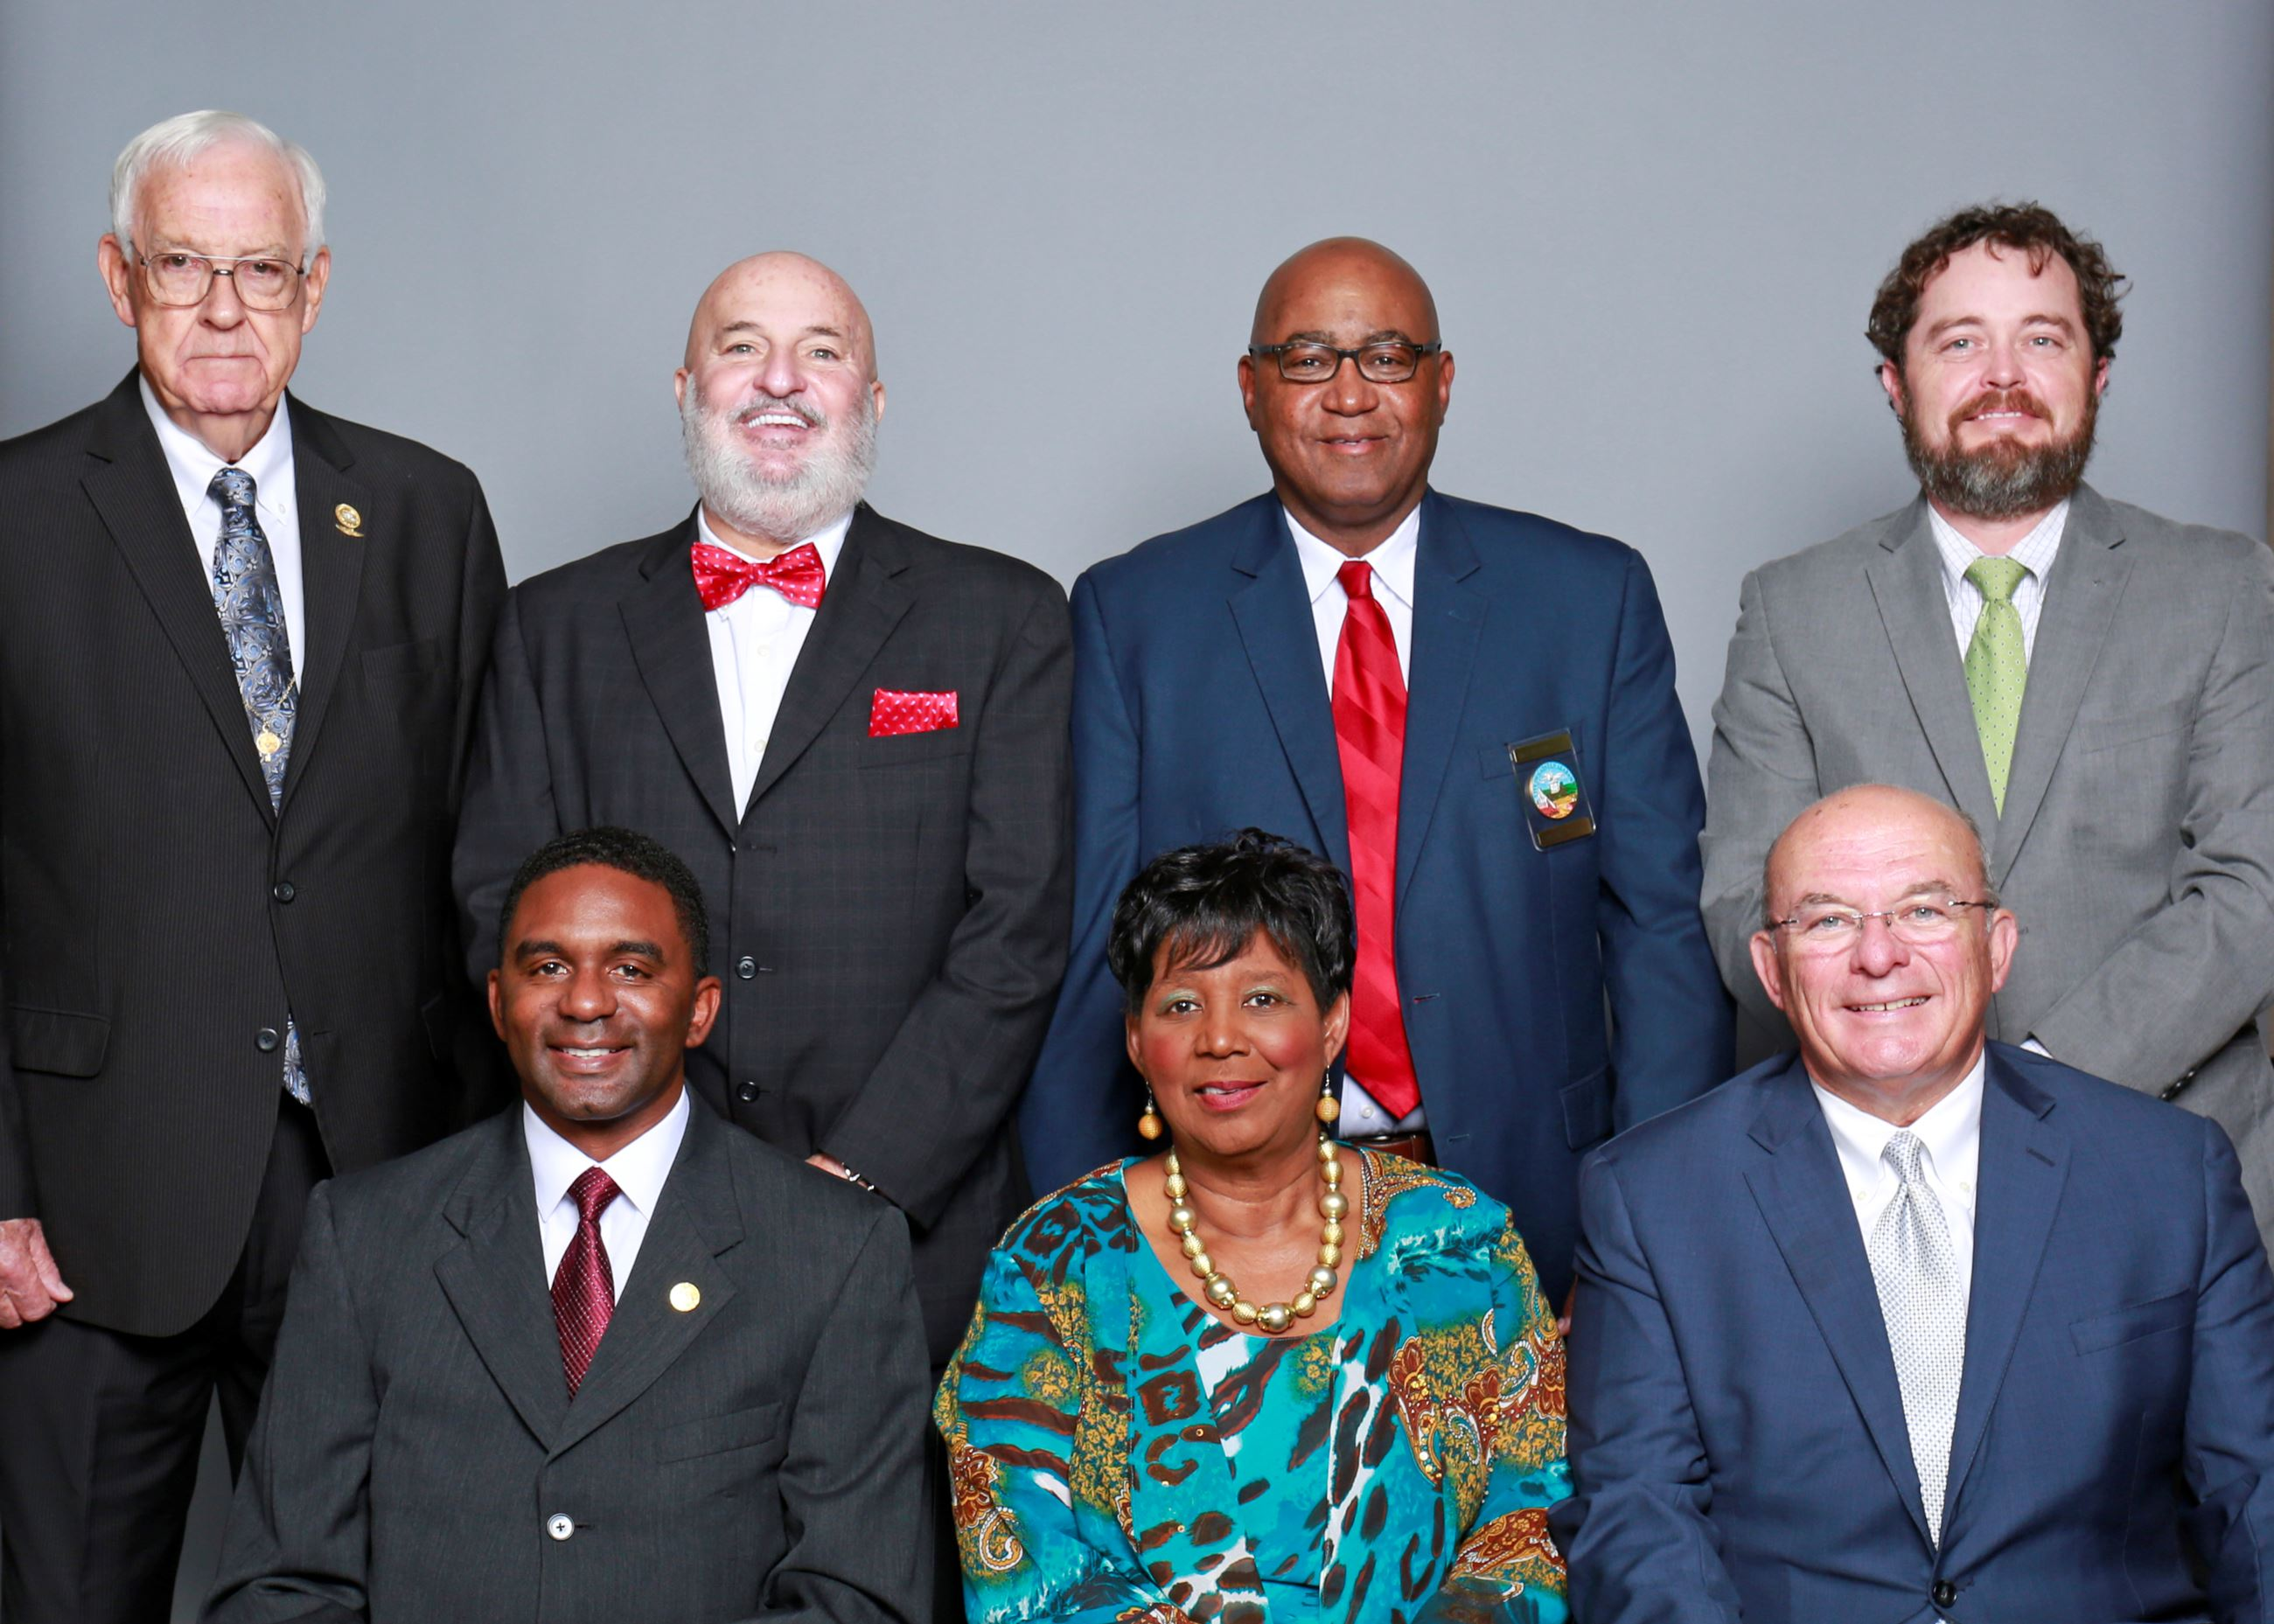 Gadsden City Council